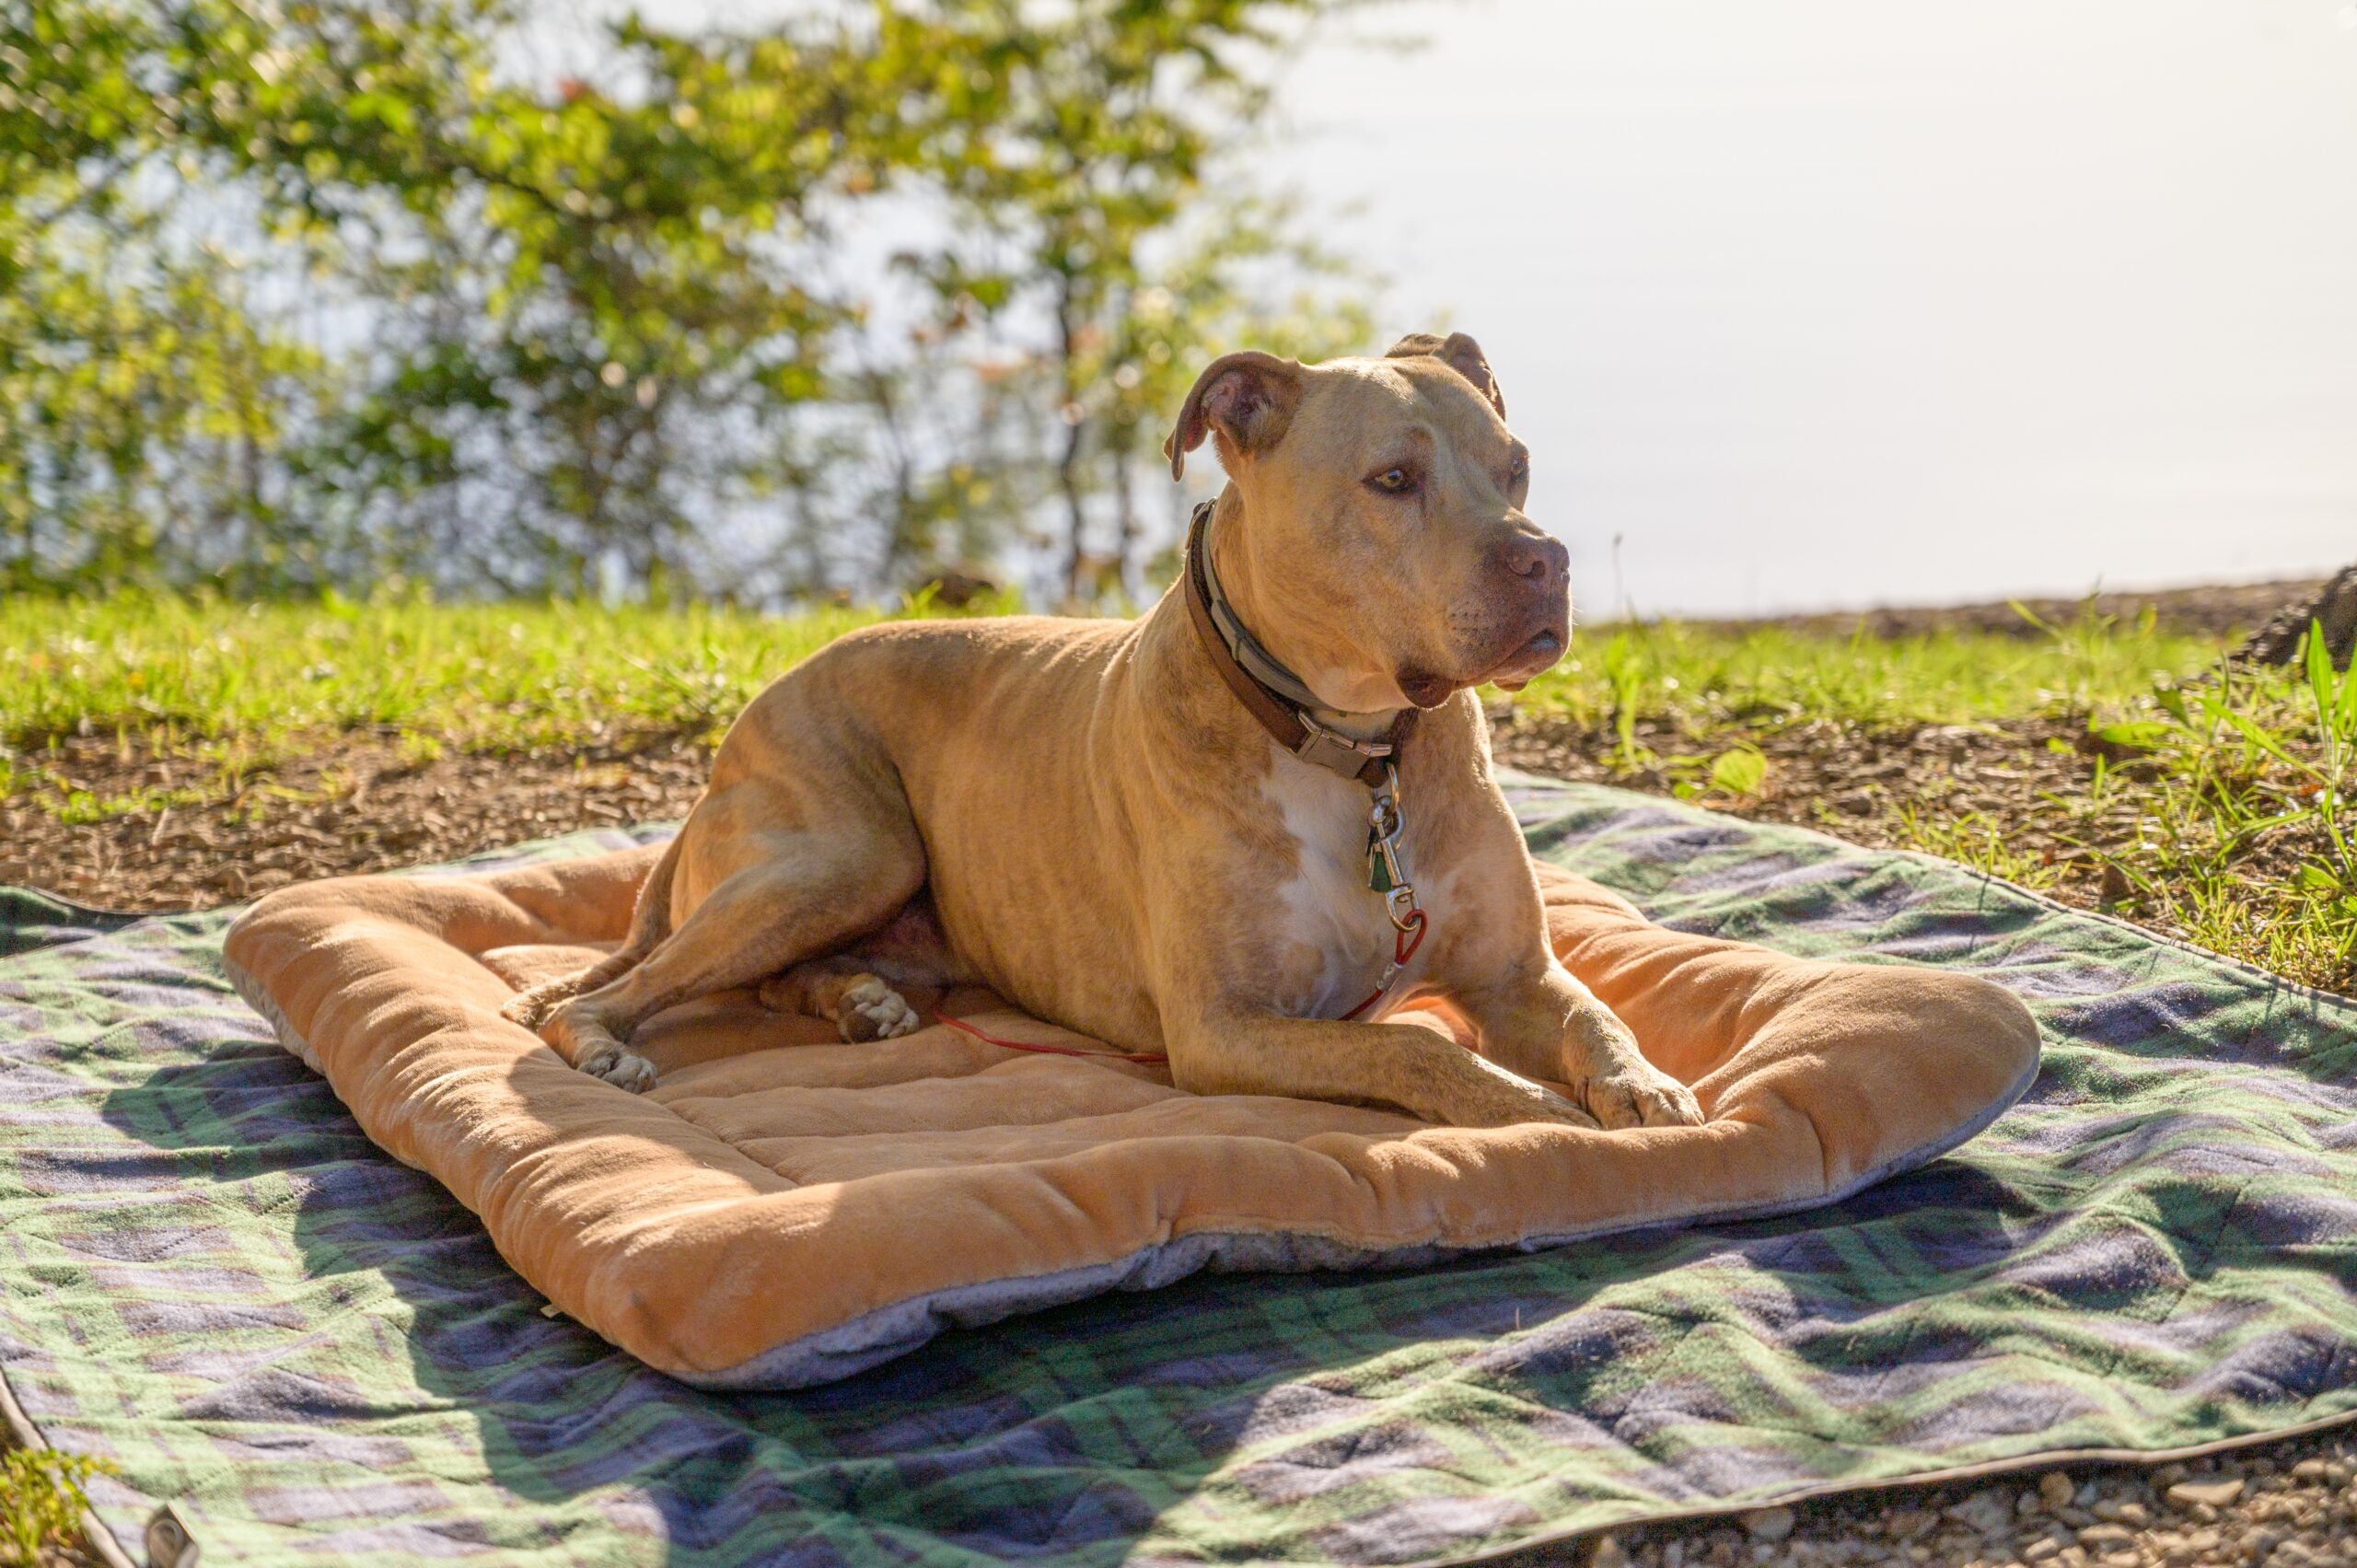 8 Best Dog Toys For Pit Bulls [2021] : Durable For Chewers